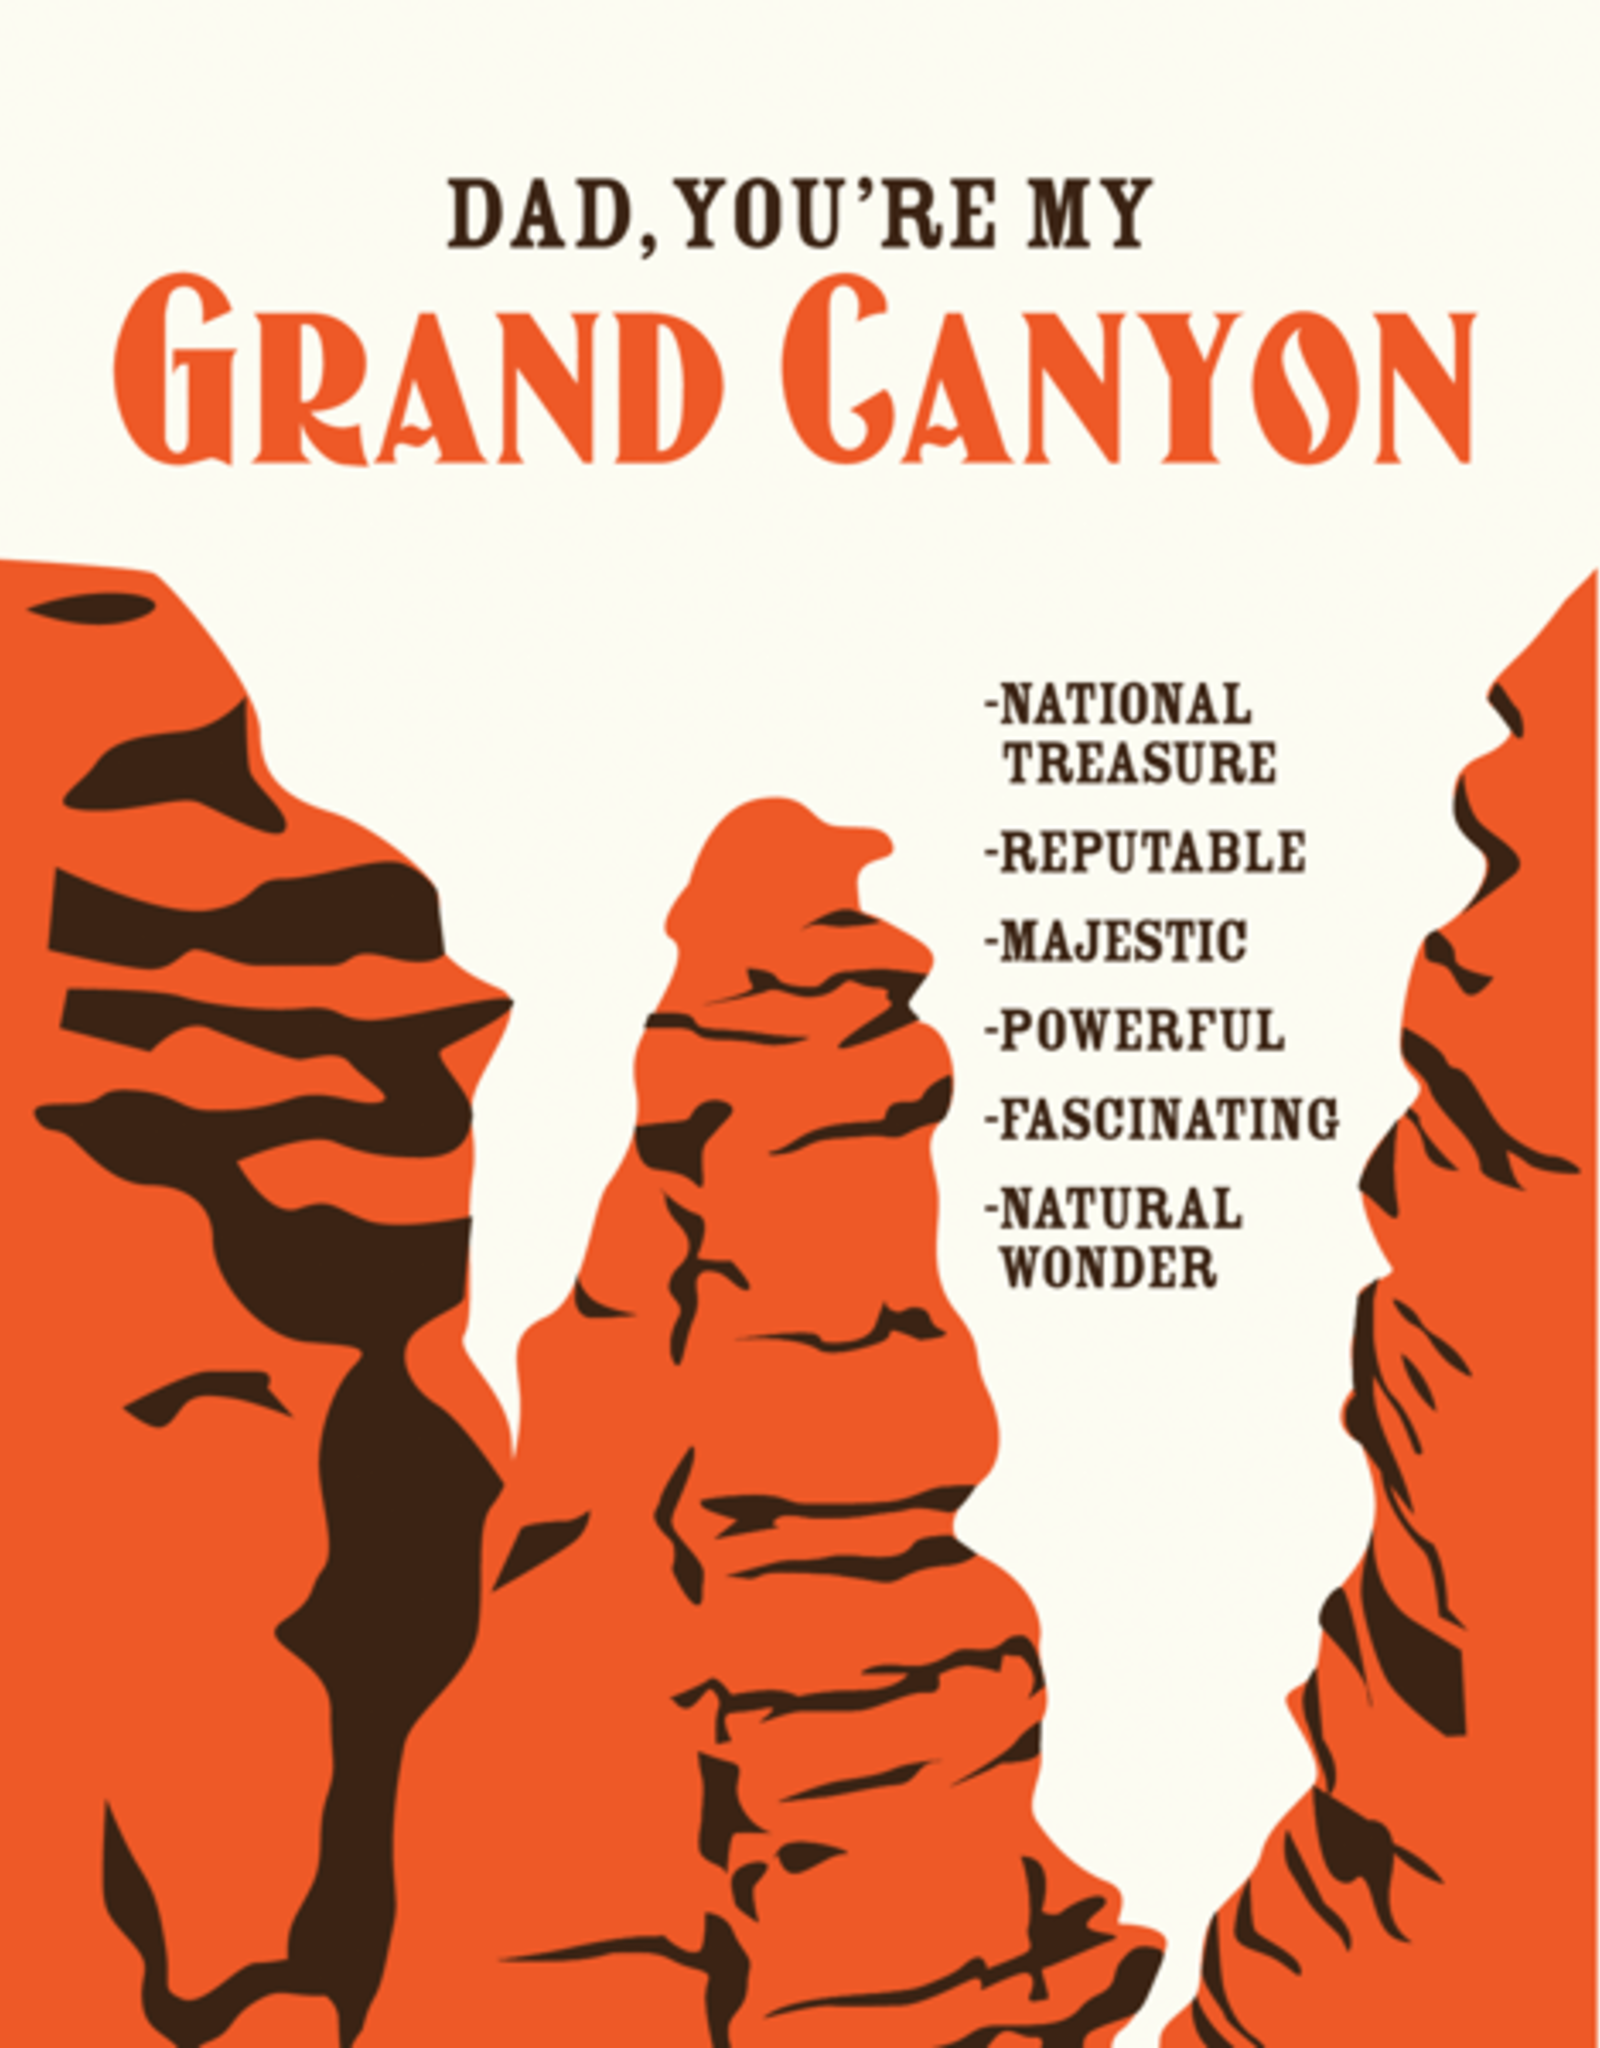 Grand Canyon Father's Day Greeting Card - A Favorite Design